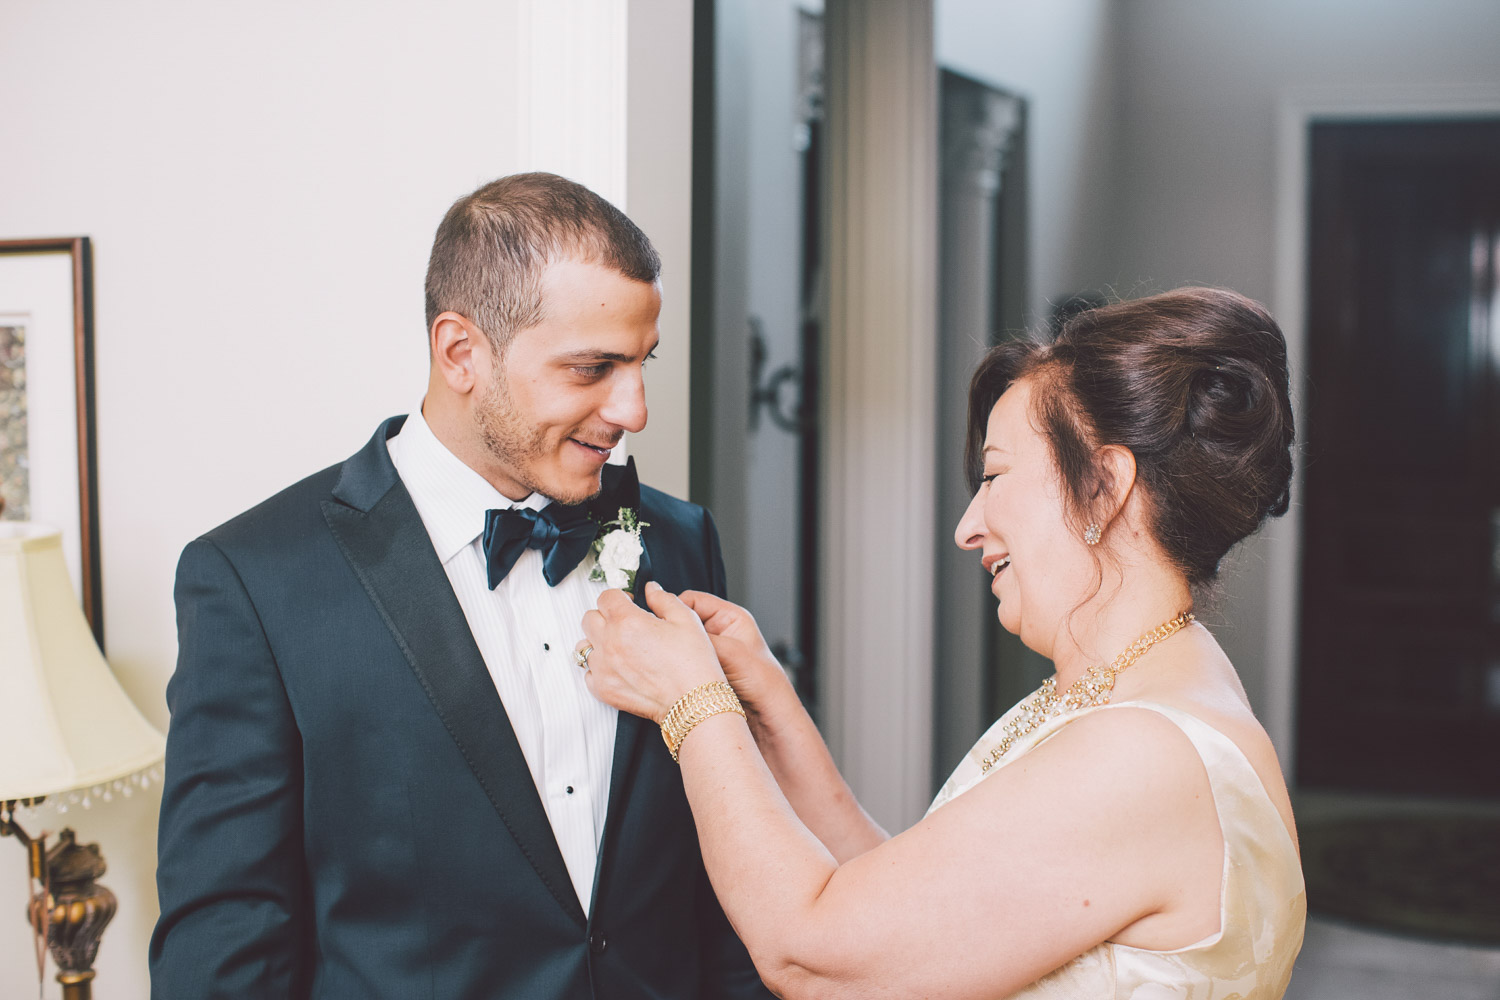 pinning on the boutonnier